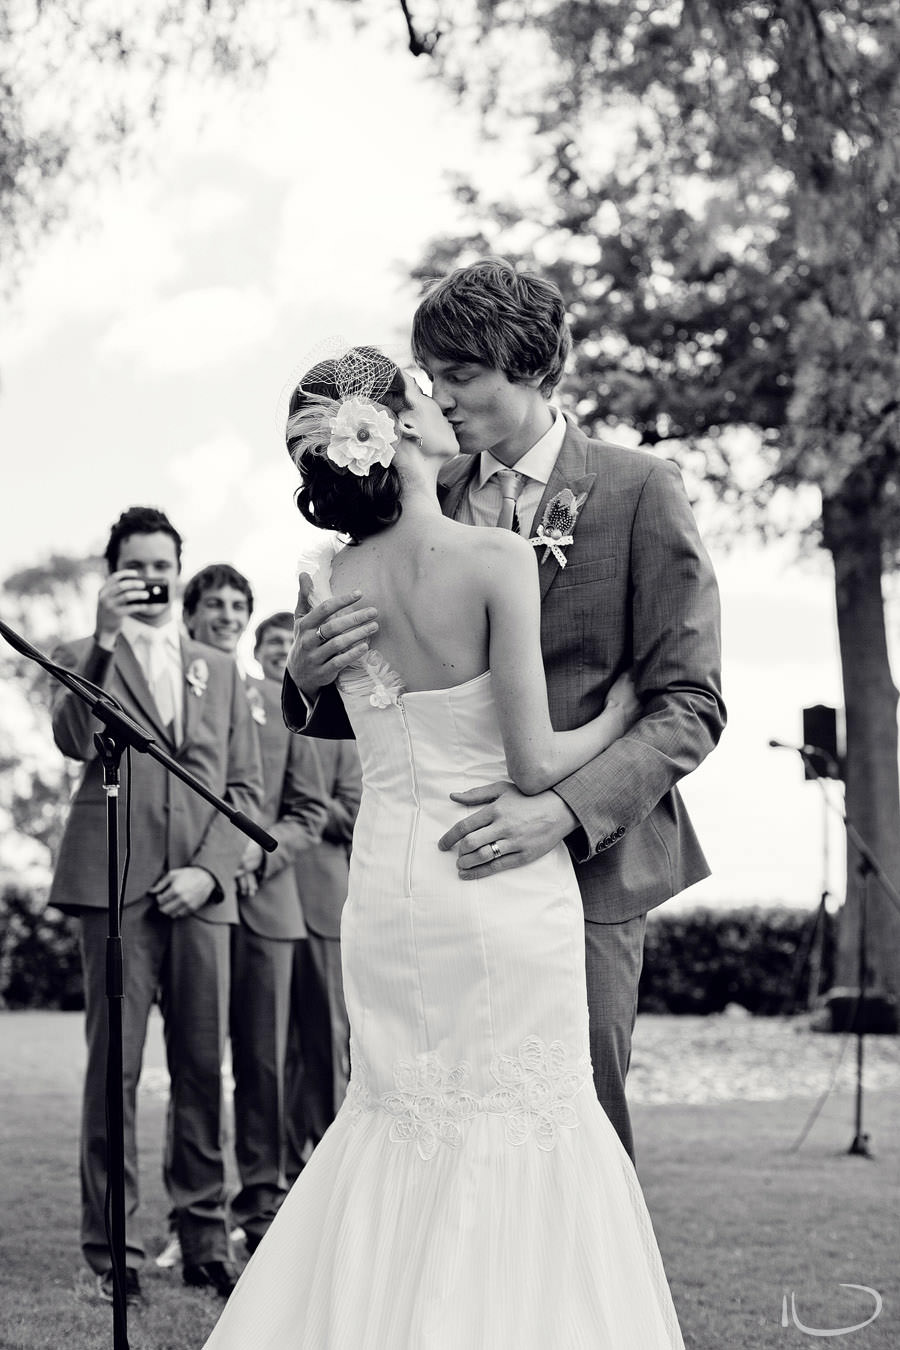 The Vintage Hunter Valley Wedding Photographer: Bride & Groom first kiss